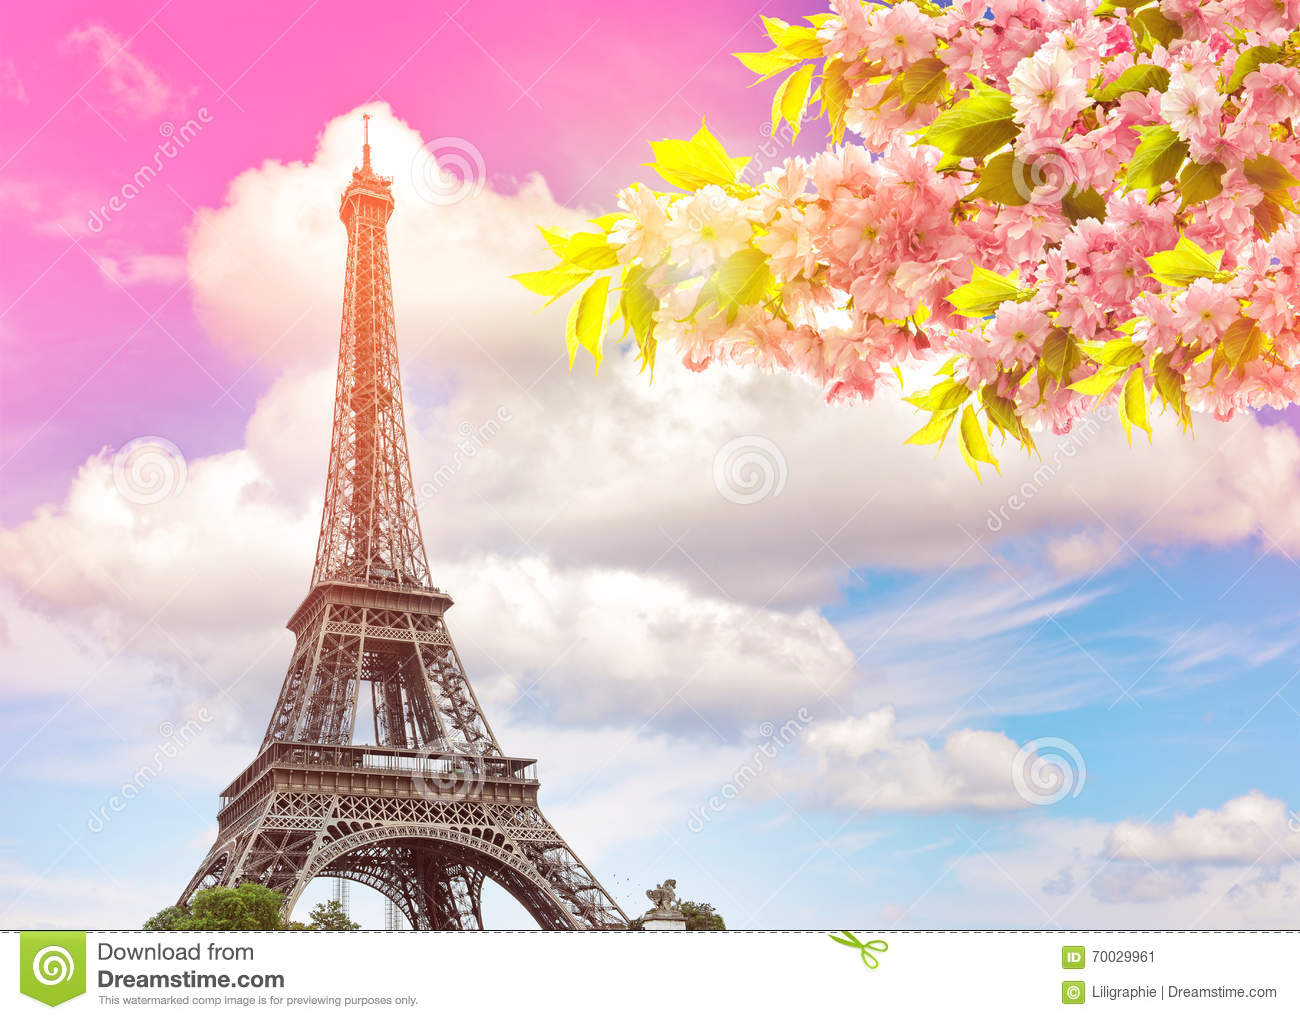 Download Eiffel Tower Paris Sunset Sky. Blossoming Spring Cherry Tree Stock Image - Image of place, flowers: 70029961